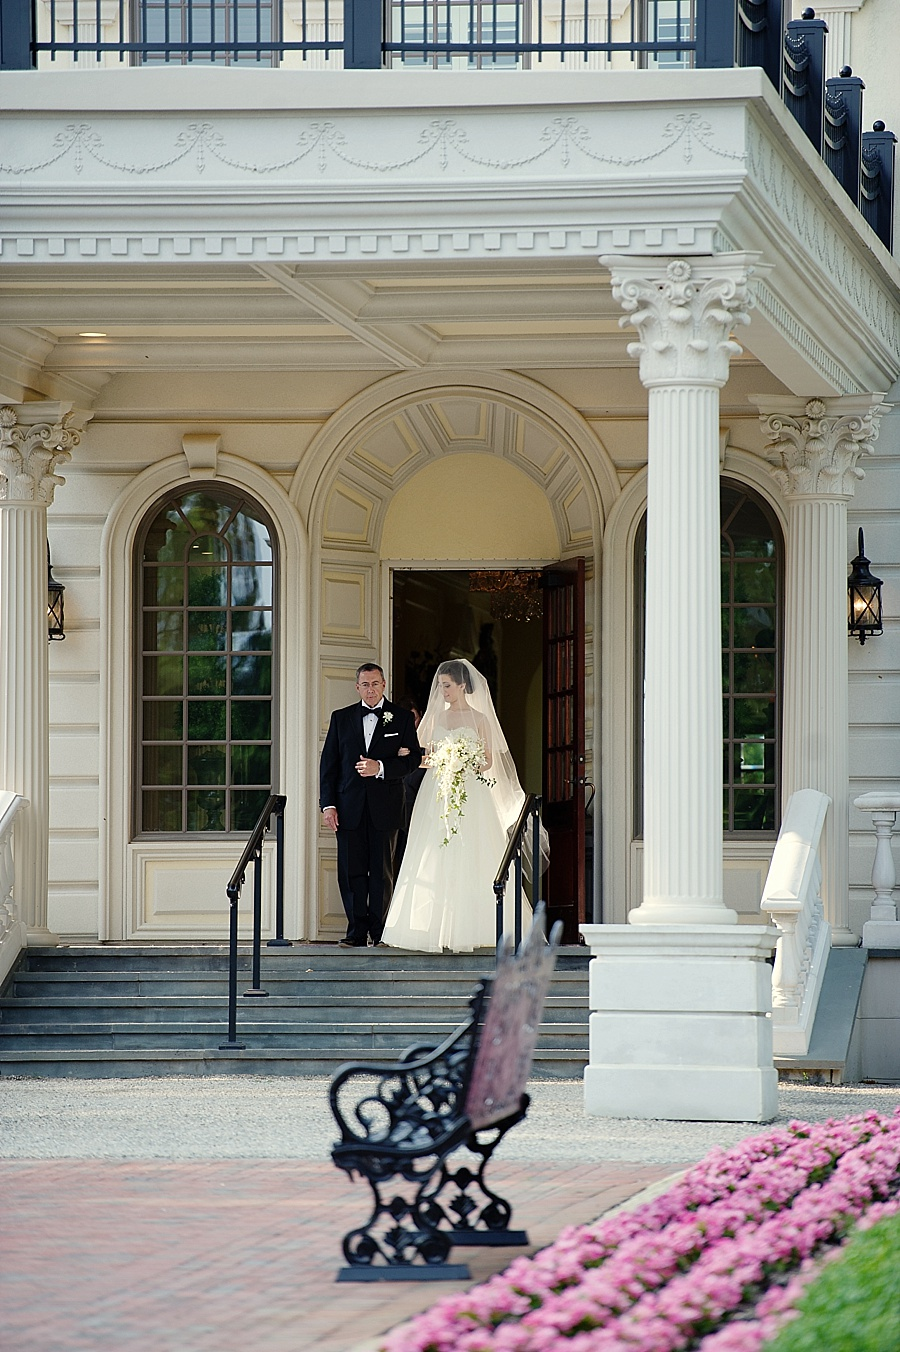 NJ_WEDDING_VENUE_ASHFORD_ESTATE_010.jpg